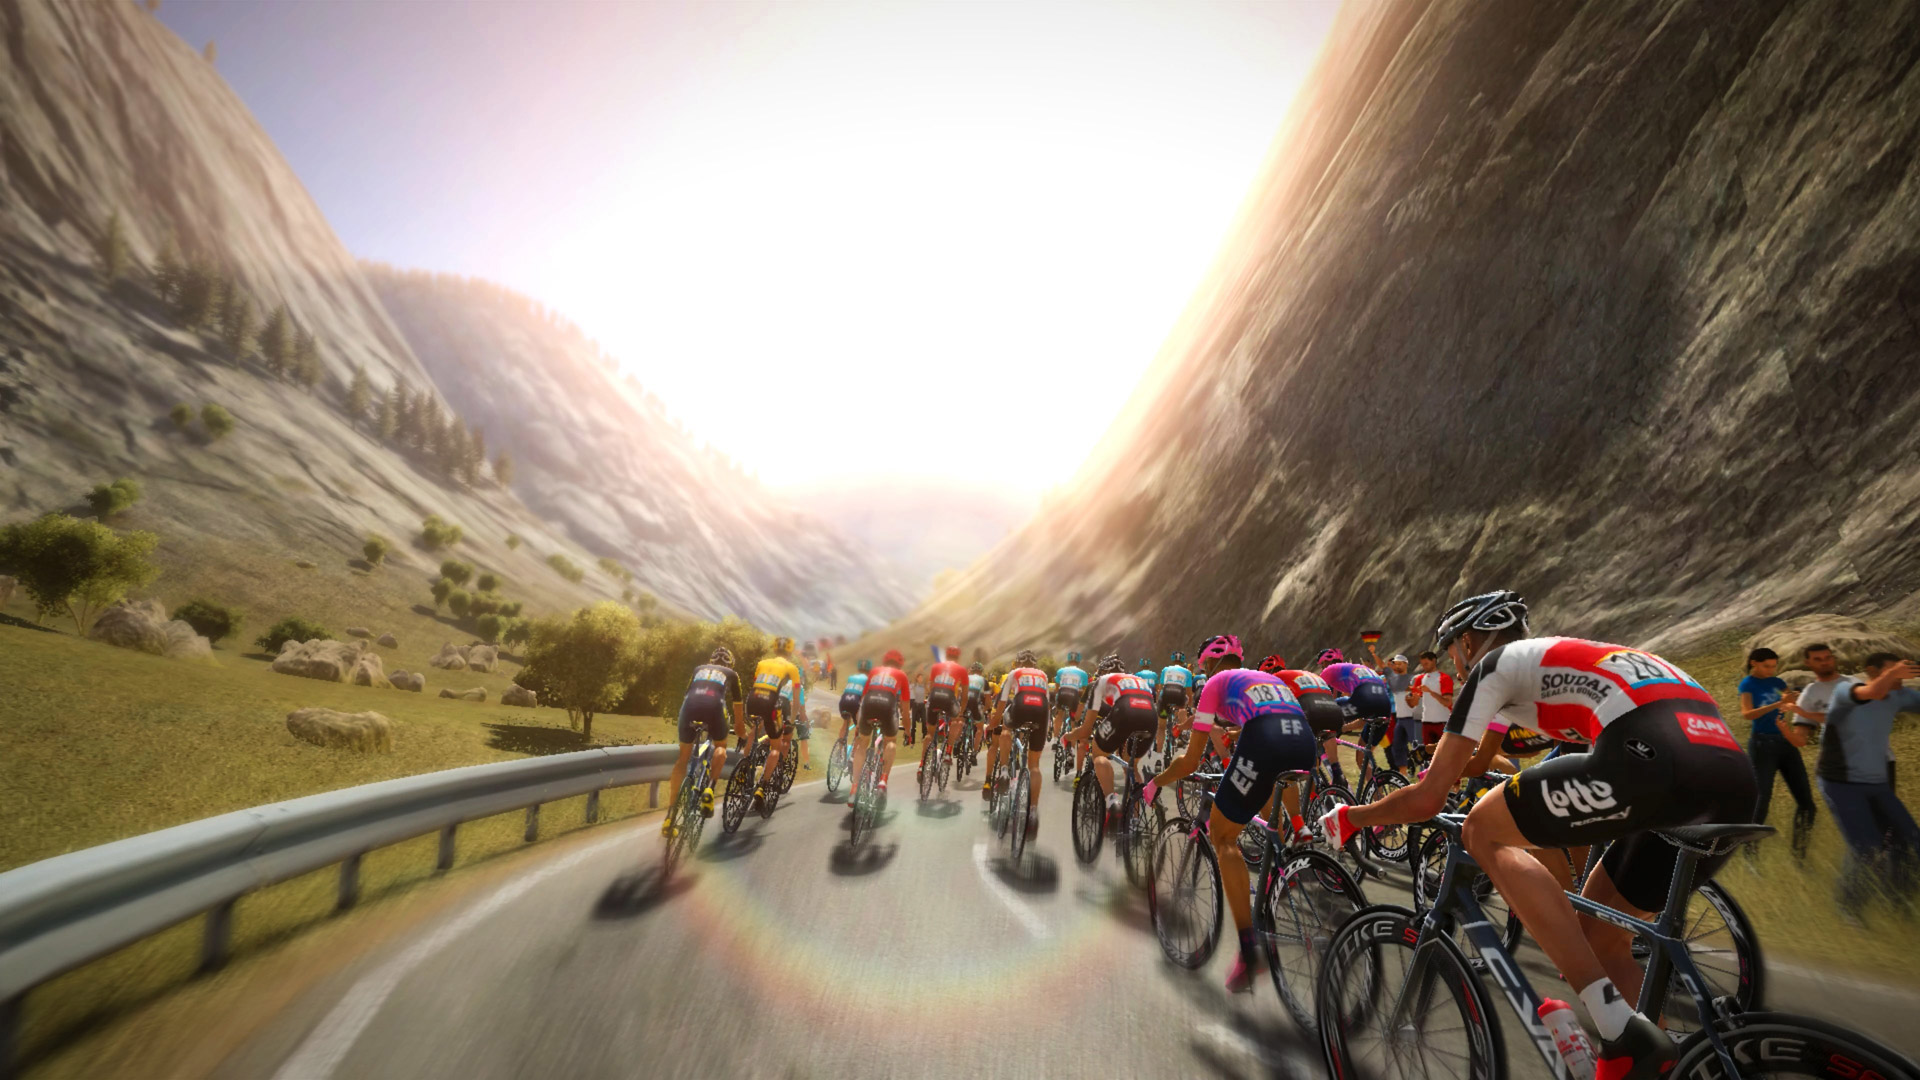 Free Tour de France 2020 Wallpaper in 1920x1080